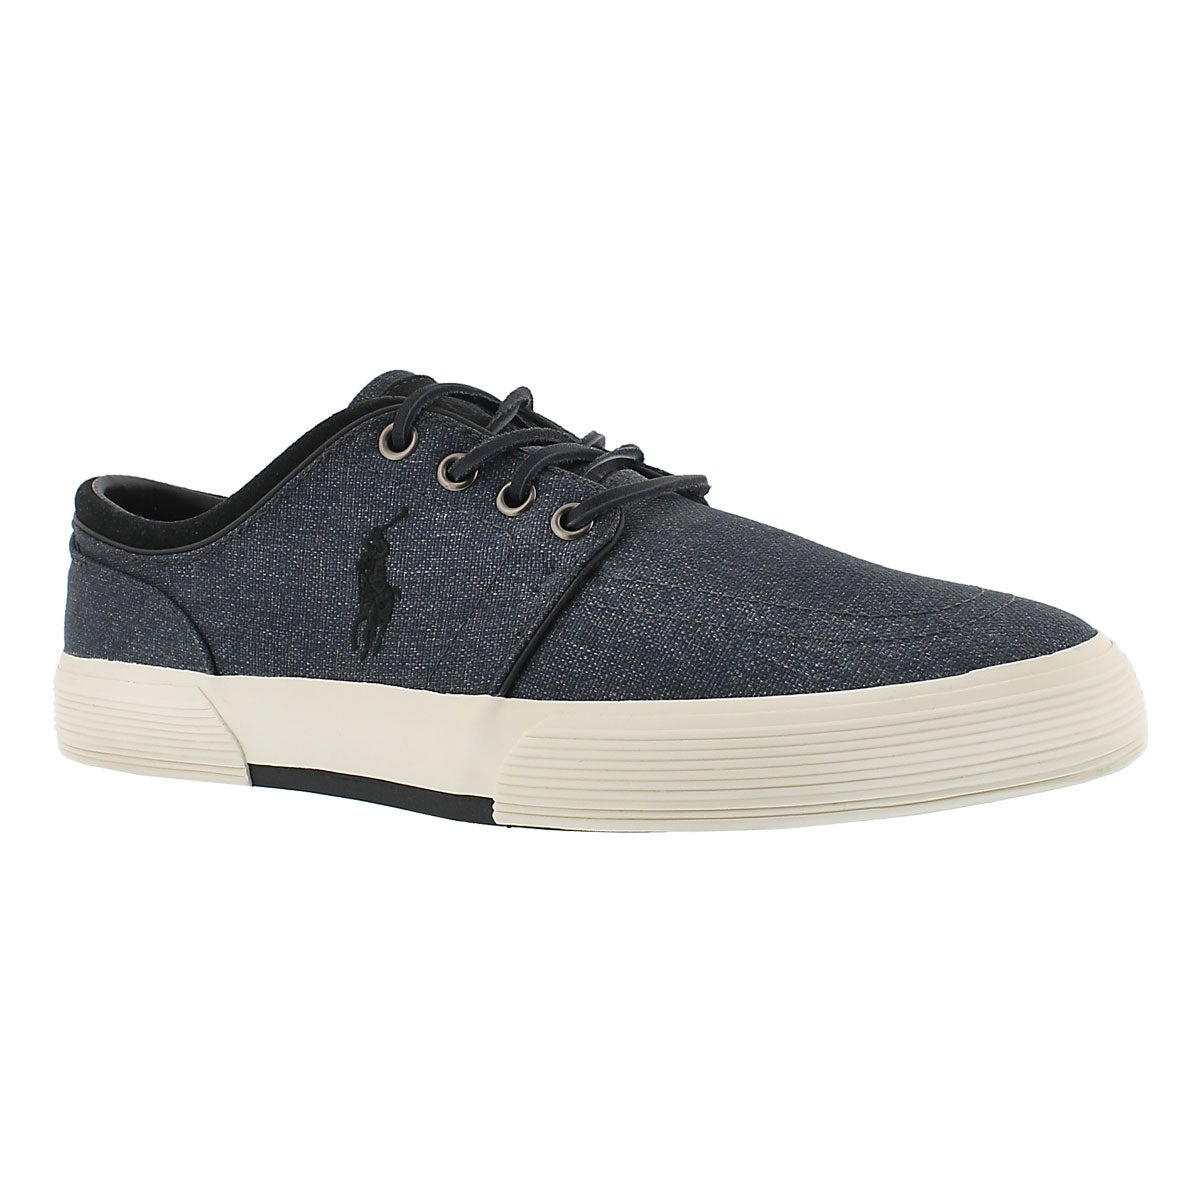 Men's FAXON LOW grey nylon sneakers